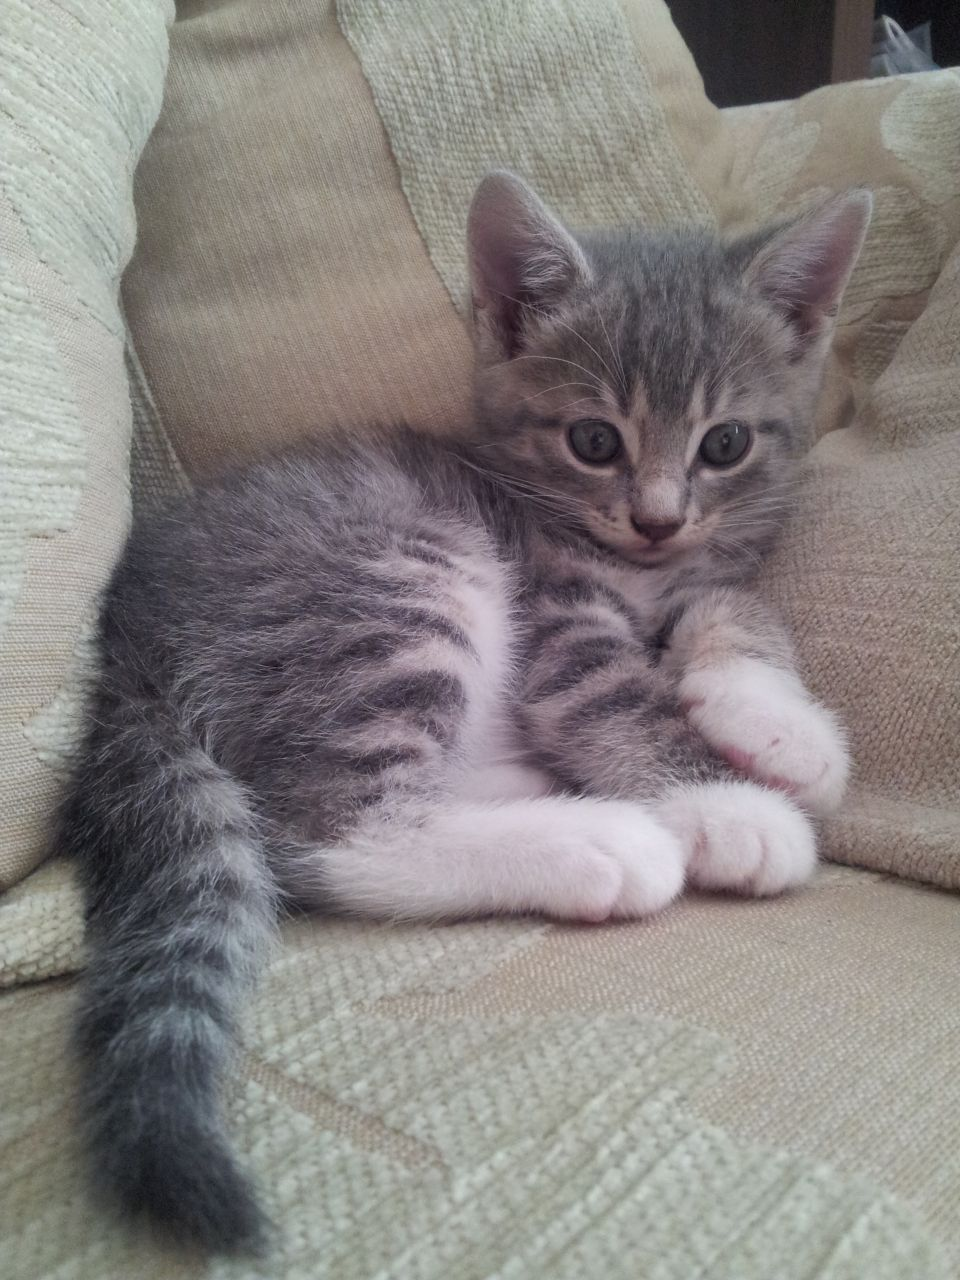 grey and white kitten for sale derby derbyshire pets4homes more at cute. Black Bedroom Furniture Sets. Home Design Ideas